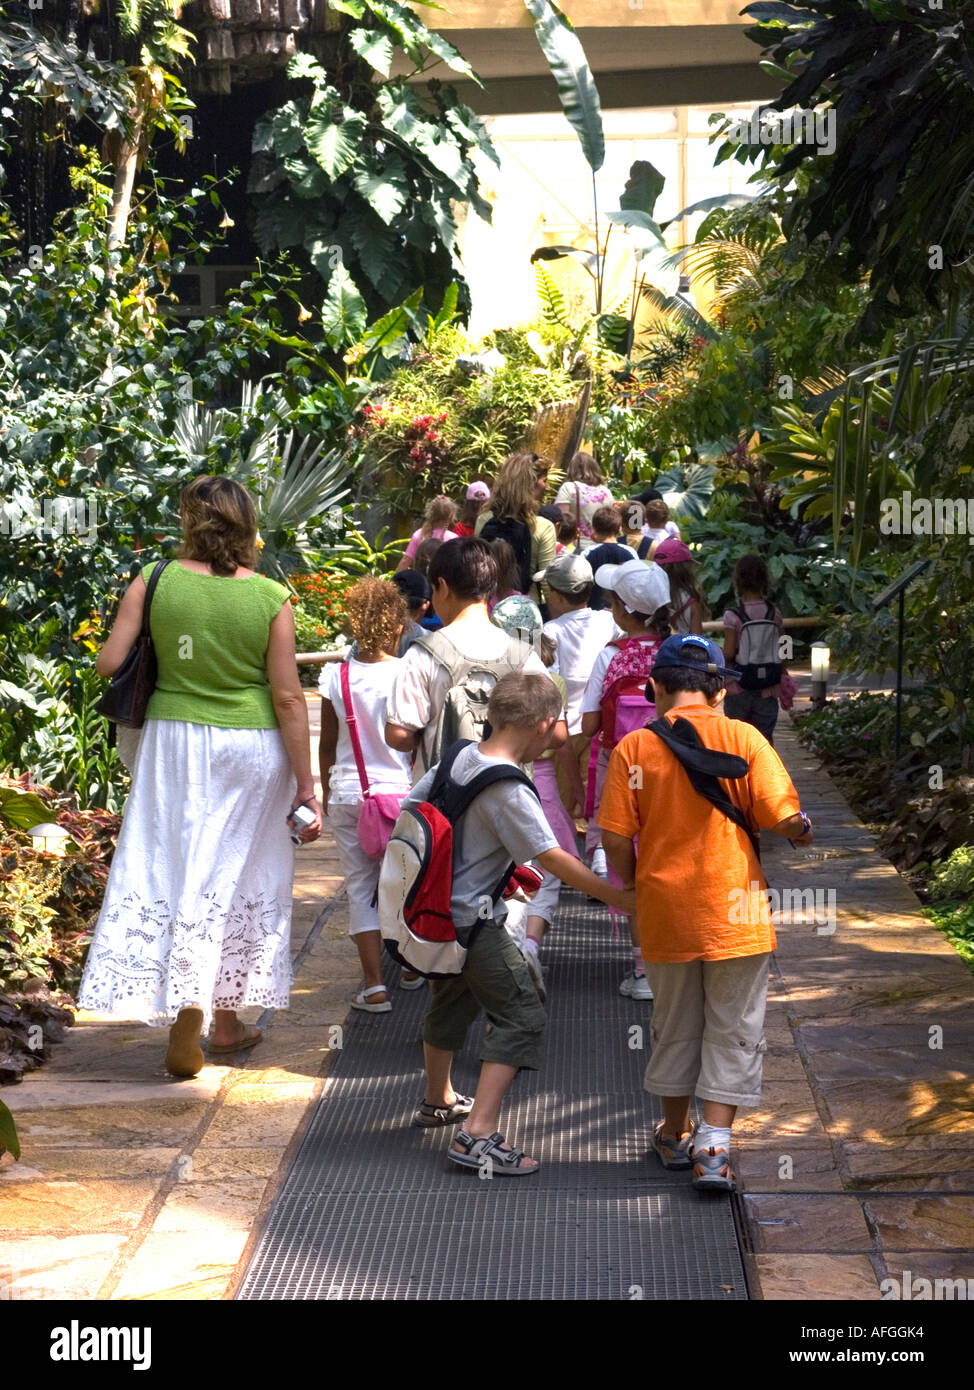 A party of schoolchildren visiting the indoor tropical plant section of Parc Phoenix the botanical gardens - Nice French Riviera - Stock Image